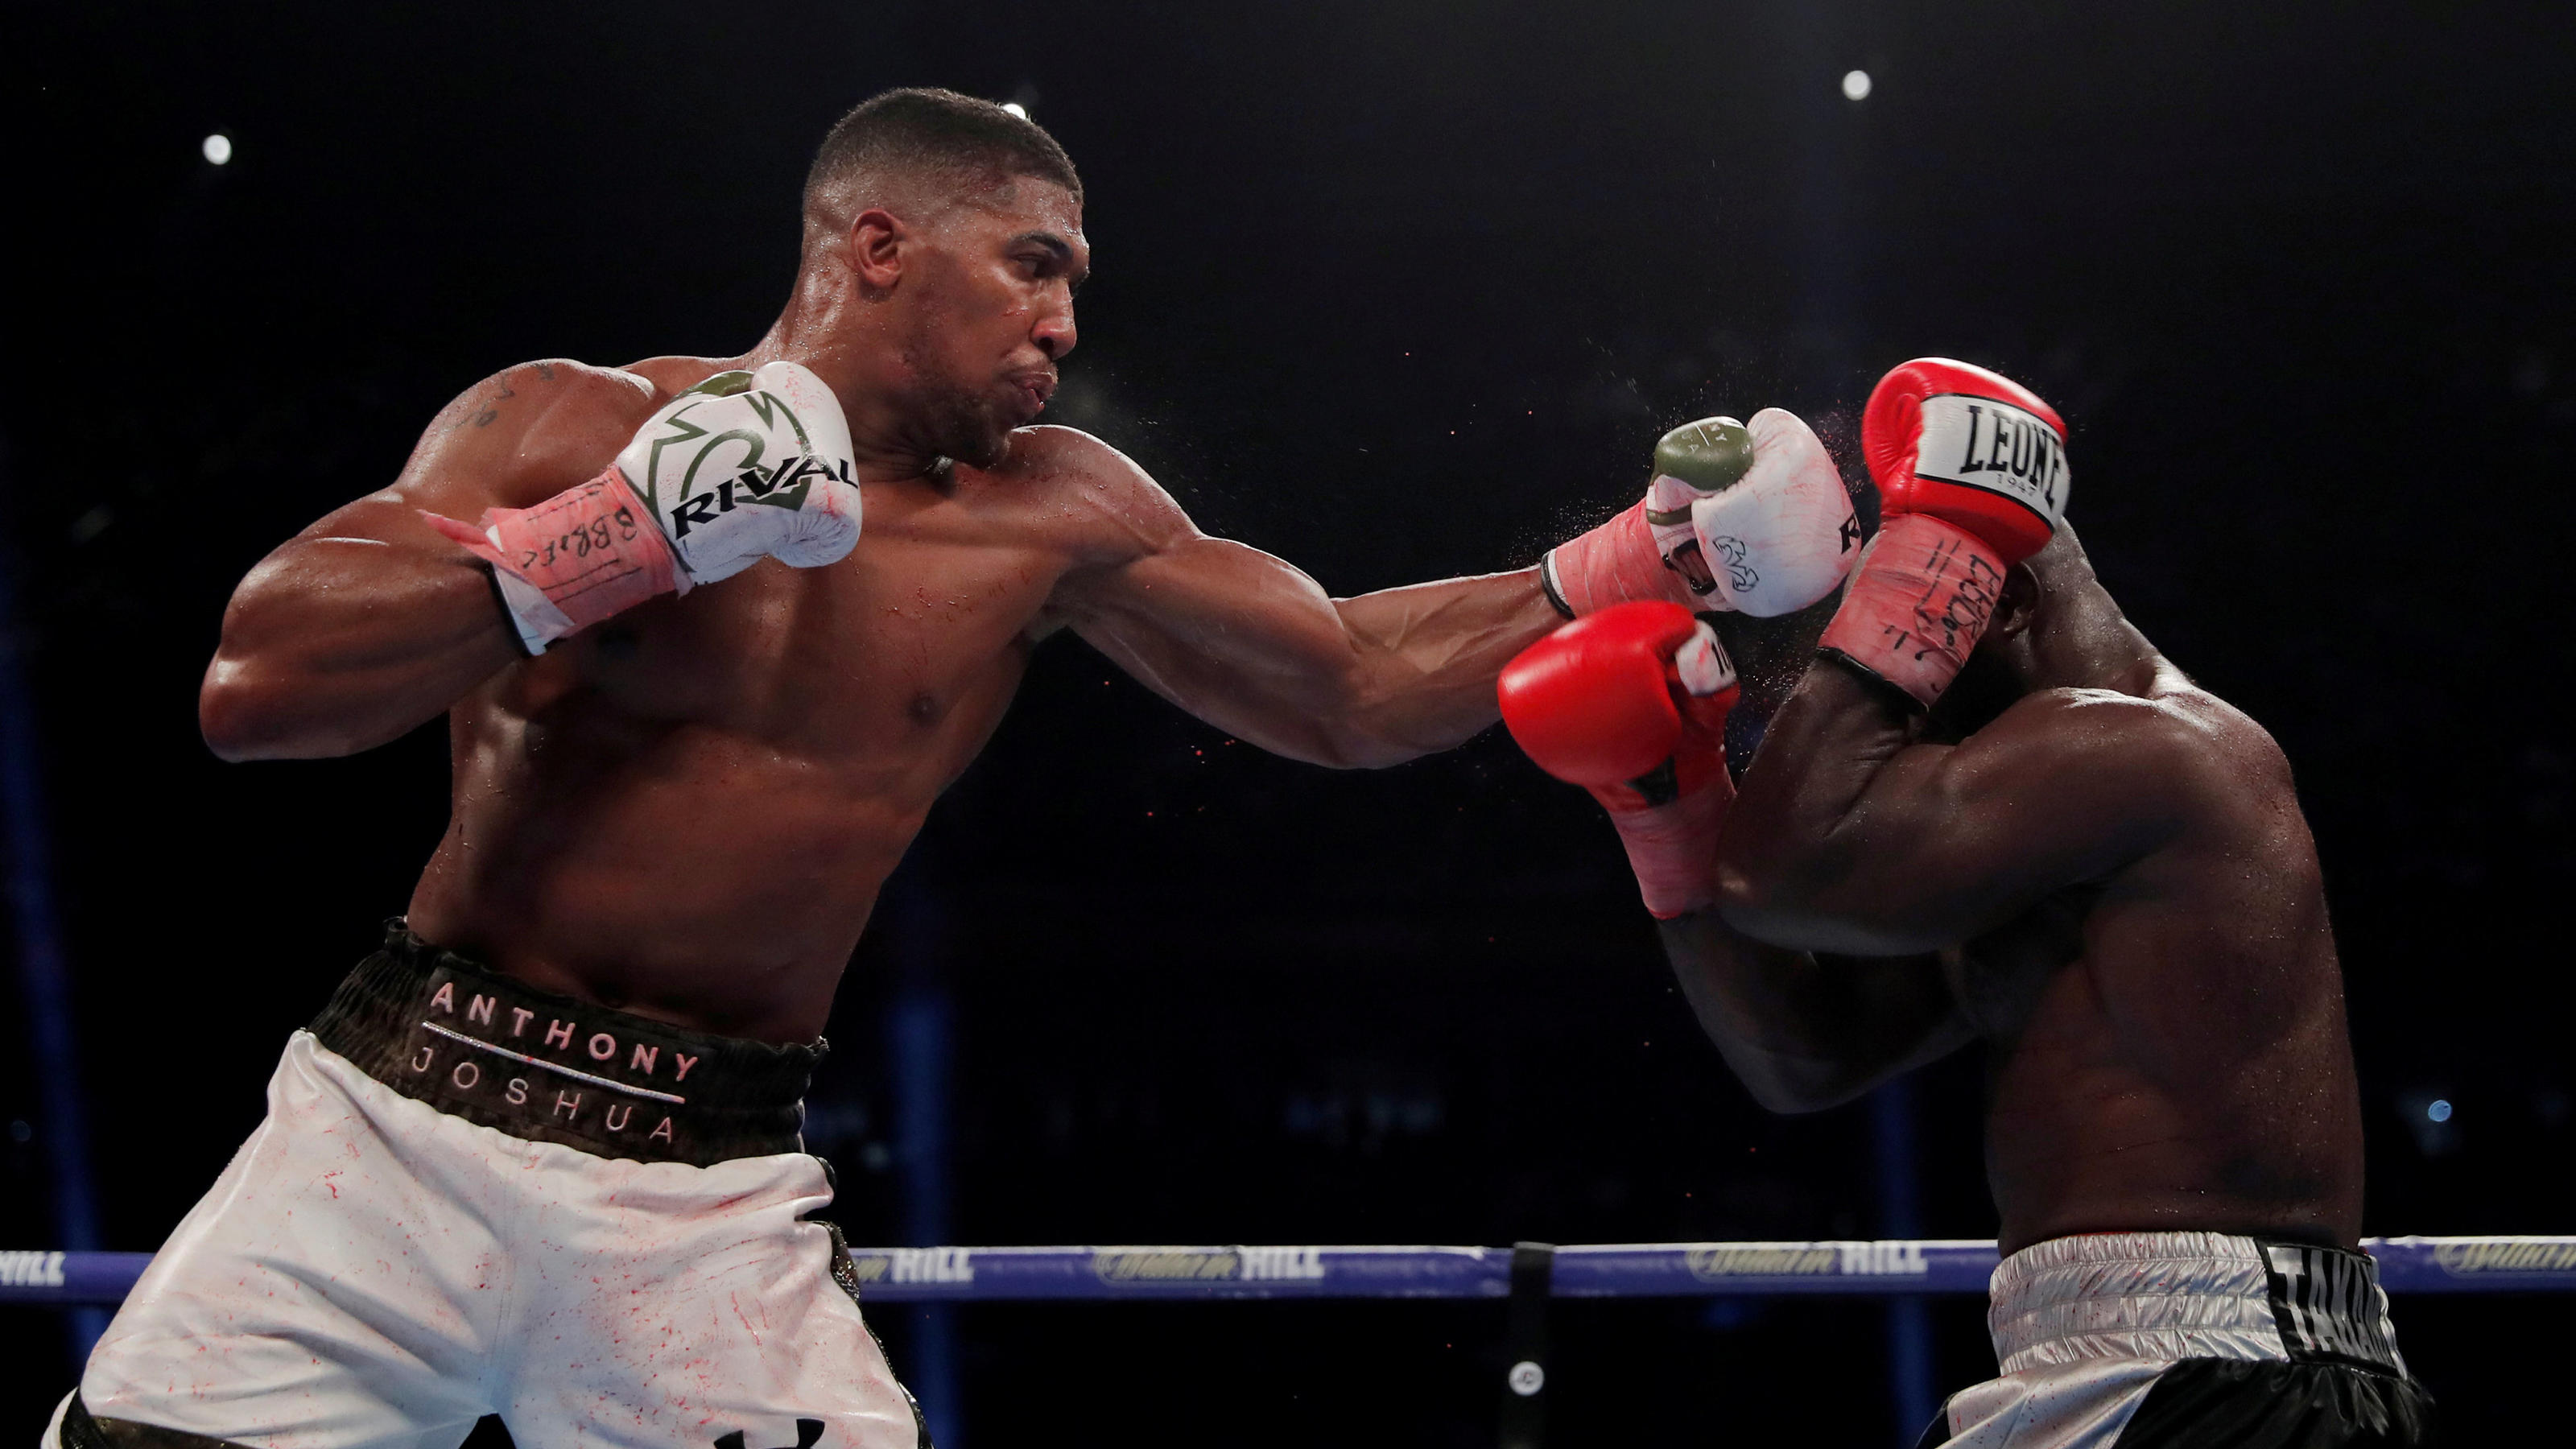 Boxing - Anthony Joshua vs Carlos Takam - IBF & WBA World Heavyweight Titles - Principality Stadium, Cardiff, Britain - October 28, 2017   Anthony Joshua in action against Carlos Takam   Action Images via Reuters/Andrew Couldridge     TPX IMAGES OF T